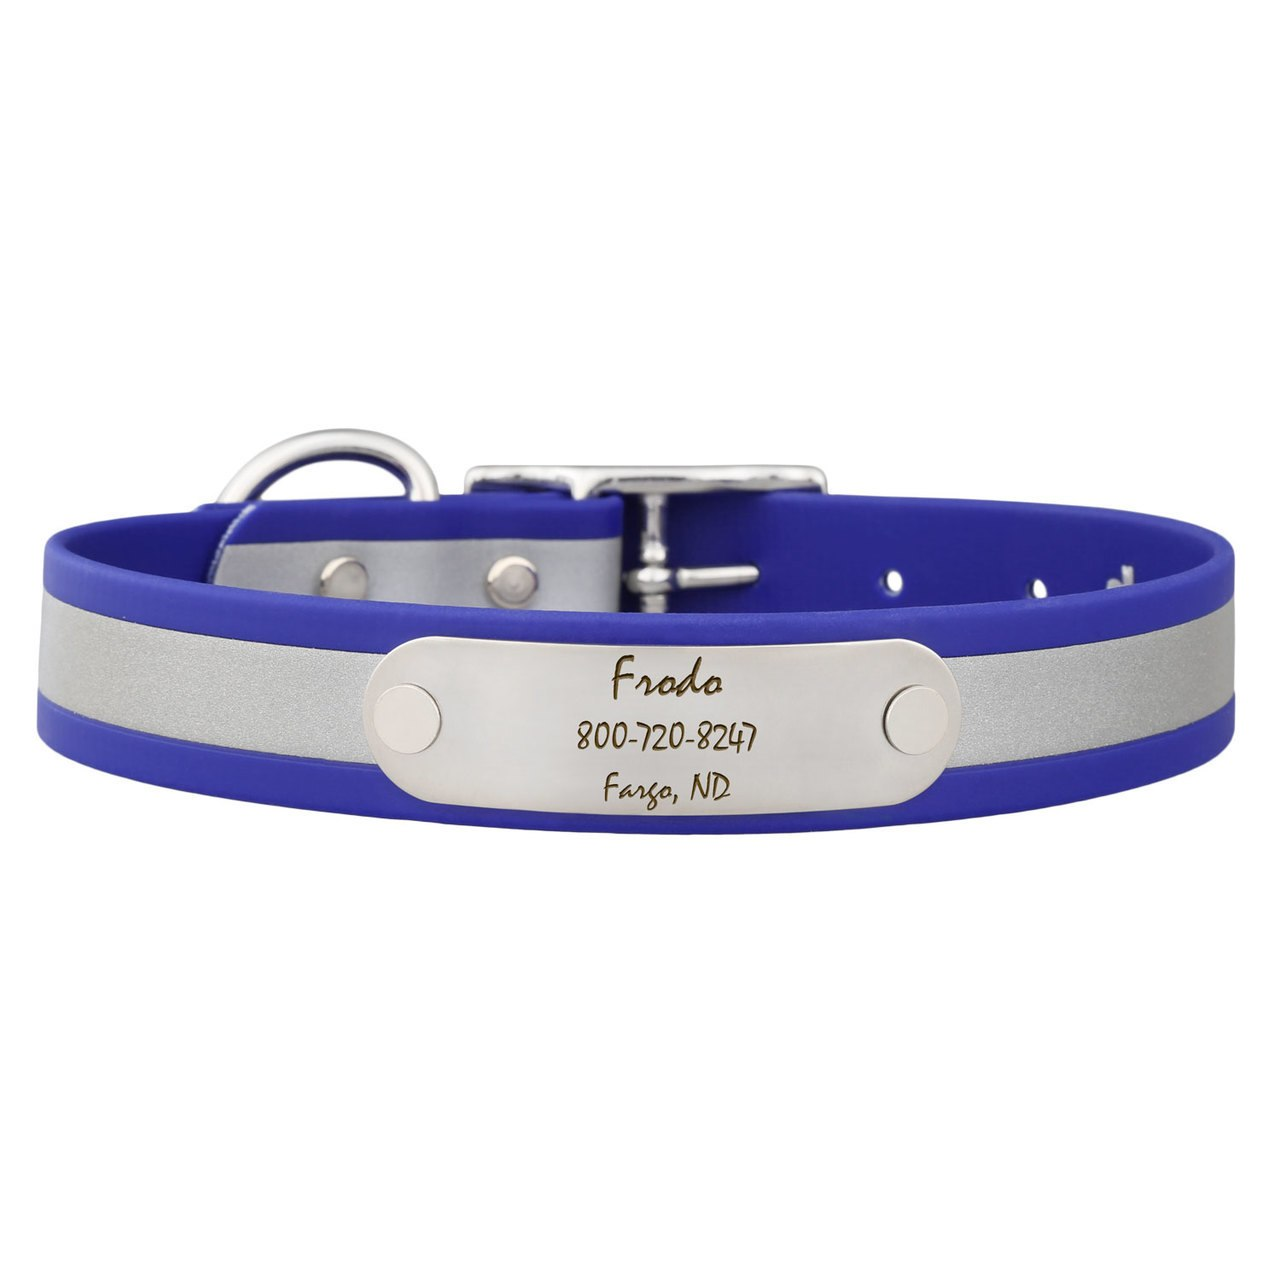 Reflective Waterproof Soft Grip Dog Collar with Nameplate Blue